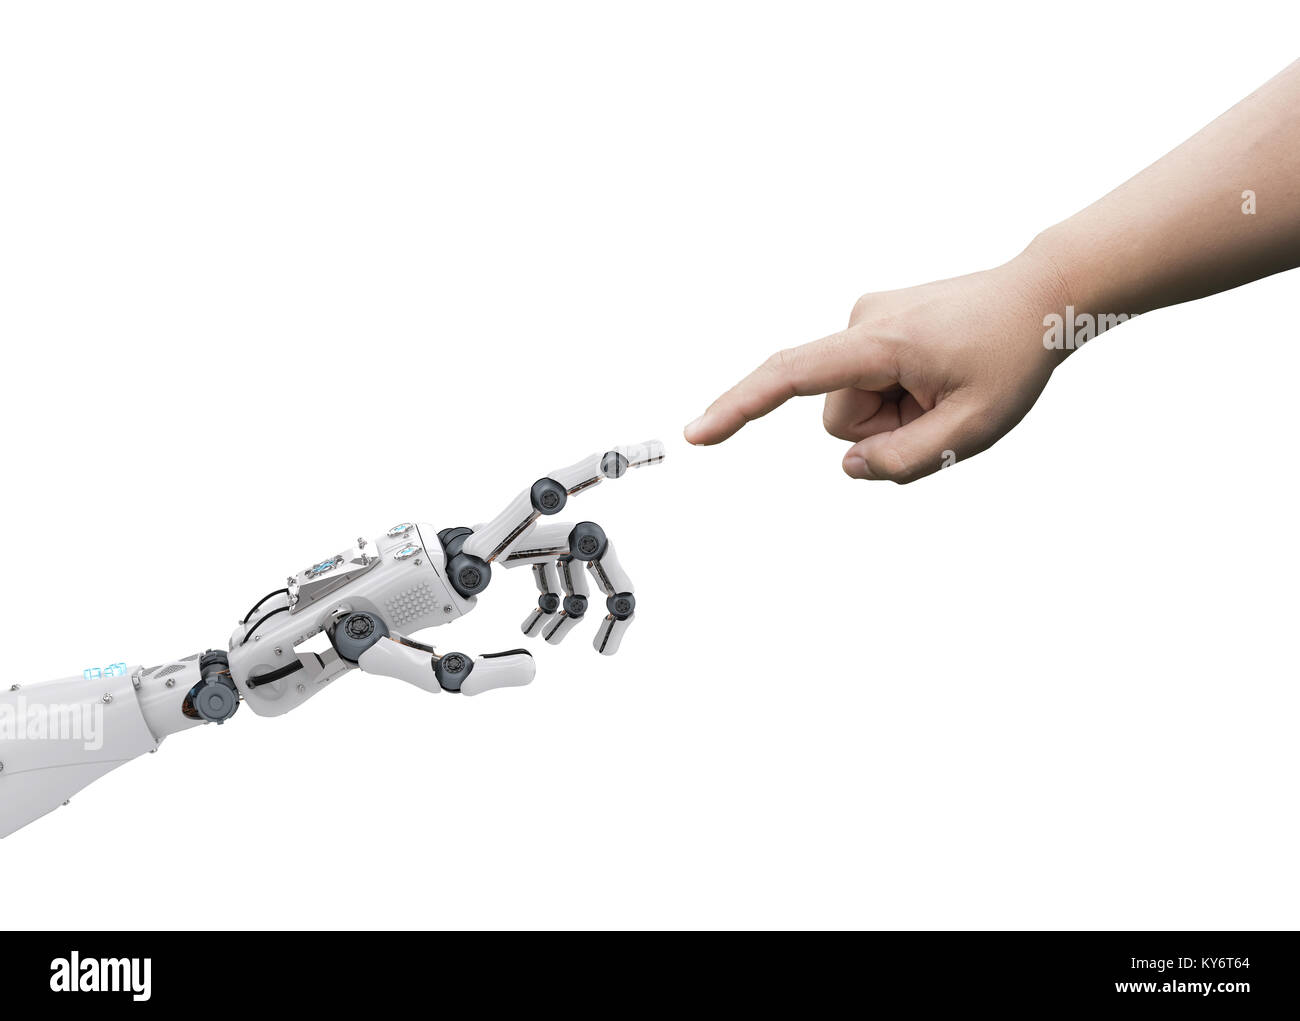 connection concept with human finger connect to 3d rendering robot finger - Stock Image